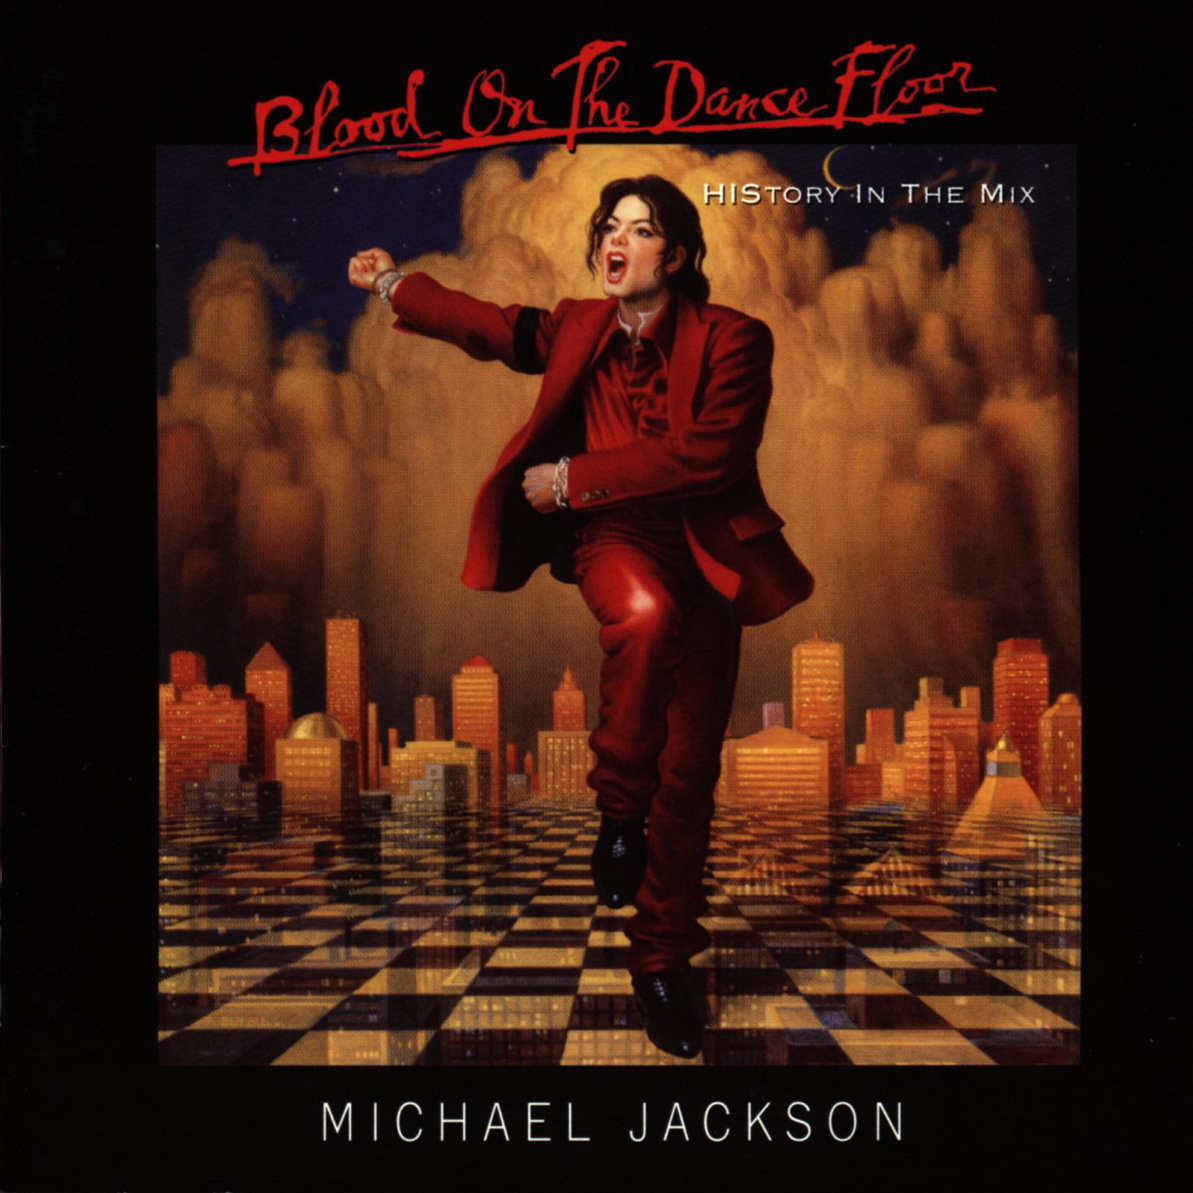 blood on the dance floor history in the mix michael